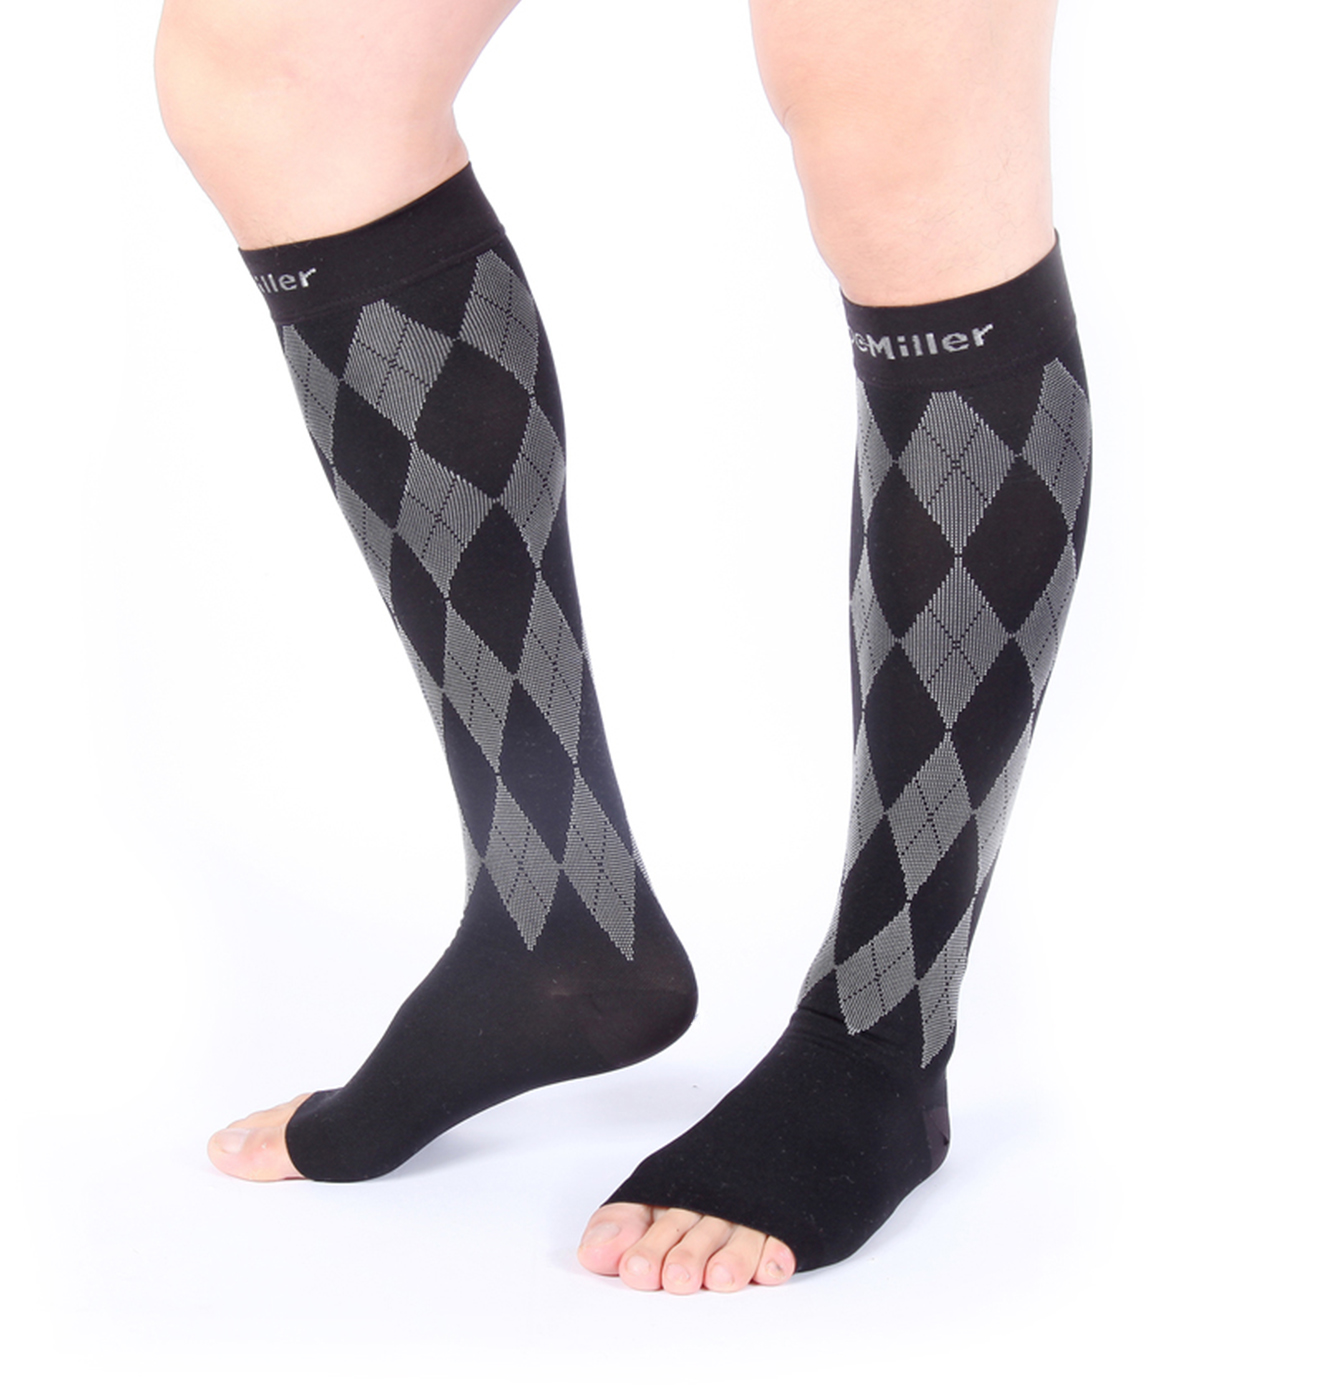 4c8257c723 Doc Miller Premium Open Toe Compression Socks 1 Pair 20-30mmHg Knee High Support  Stockings Recovery Venous Insufficiency Circulation Varicose Spider Veins  ...